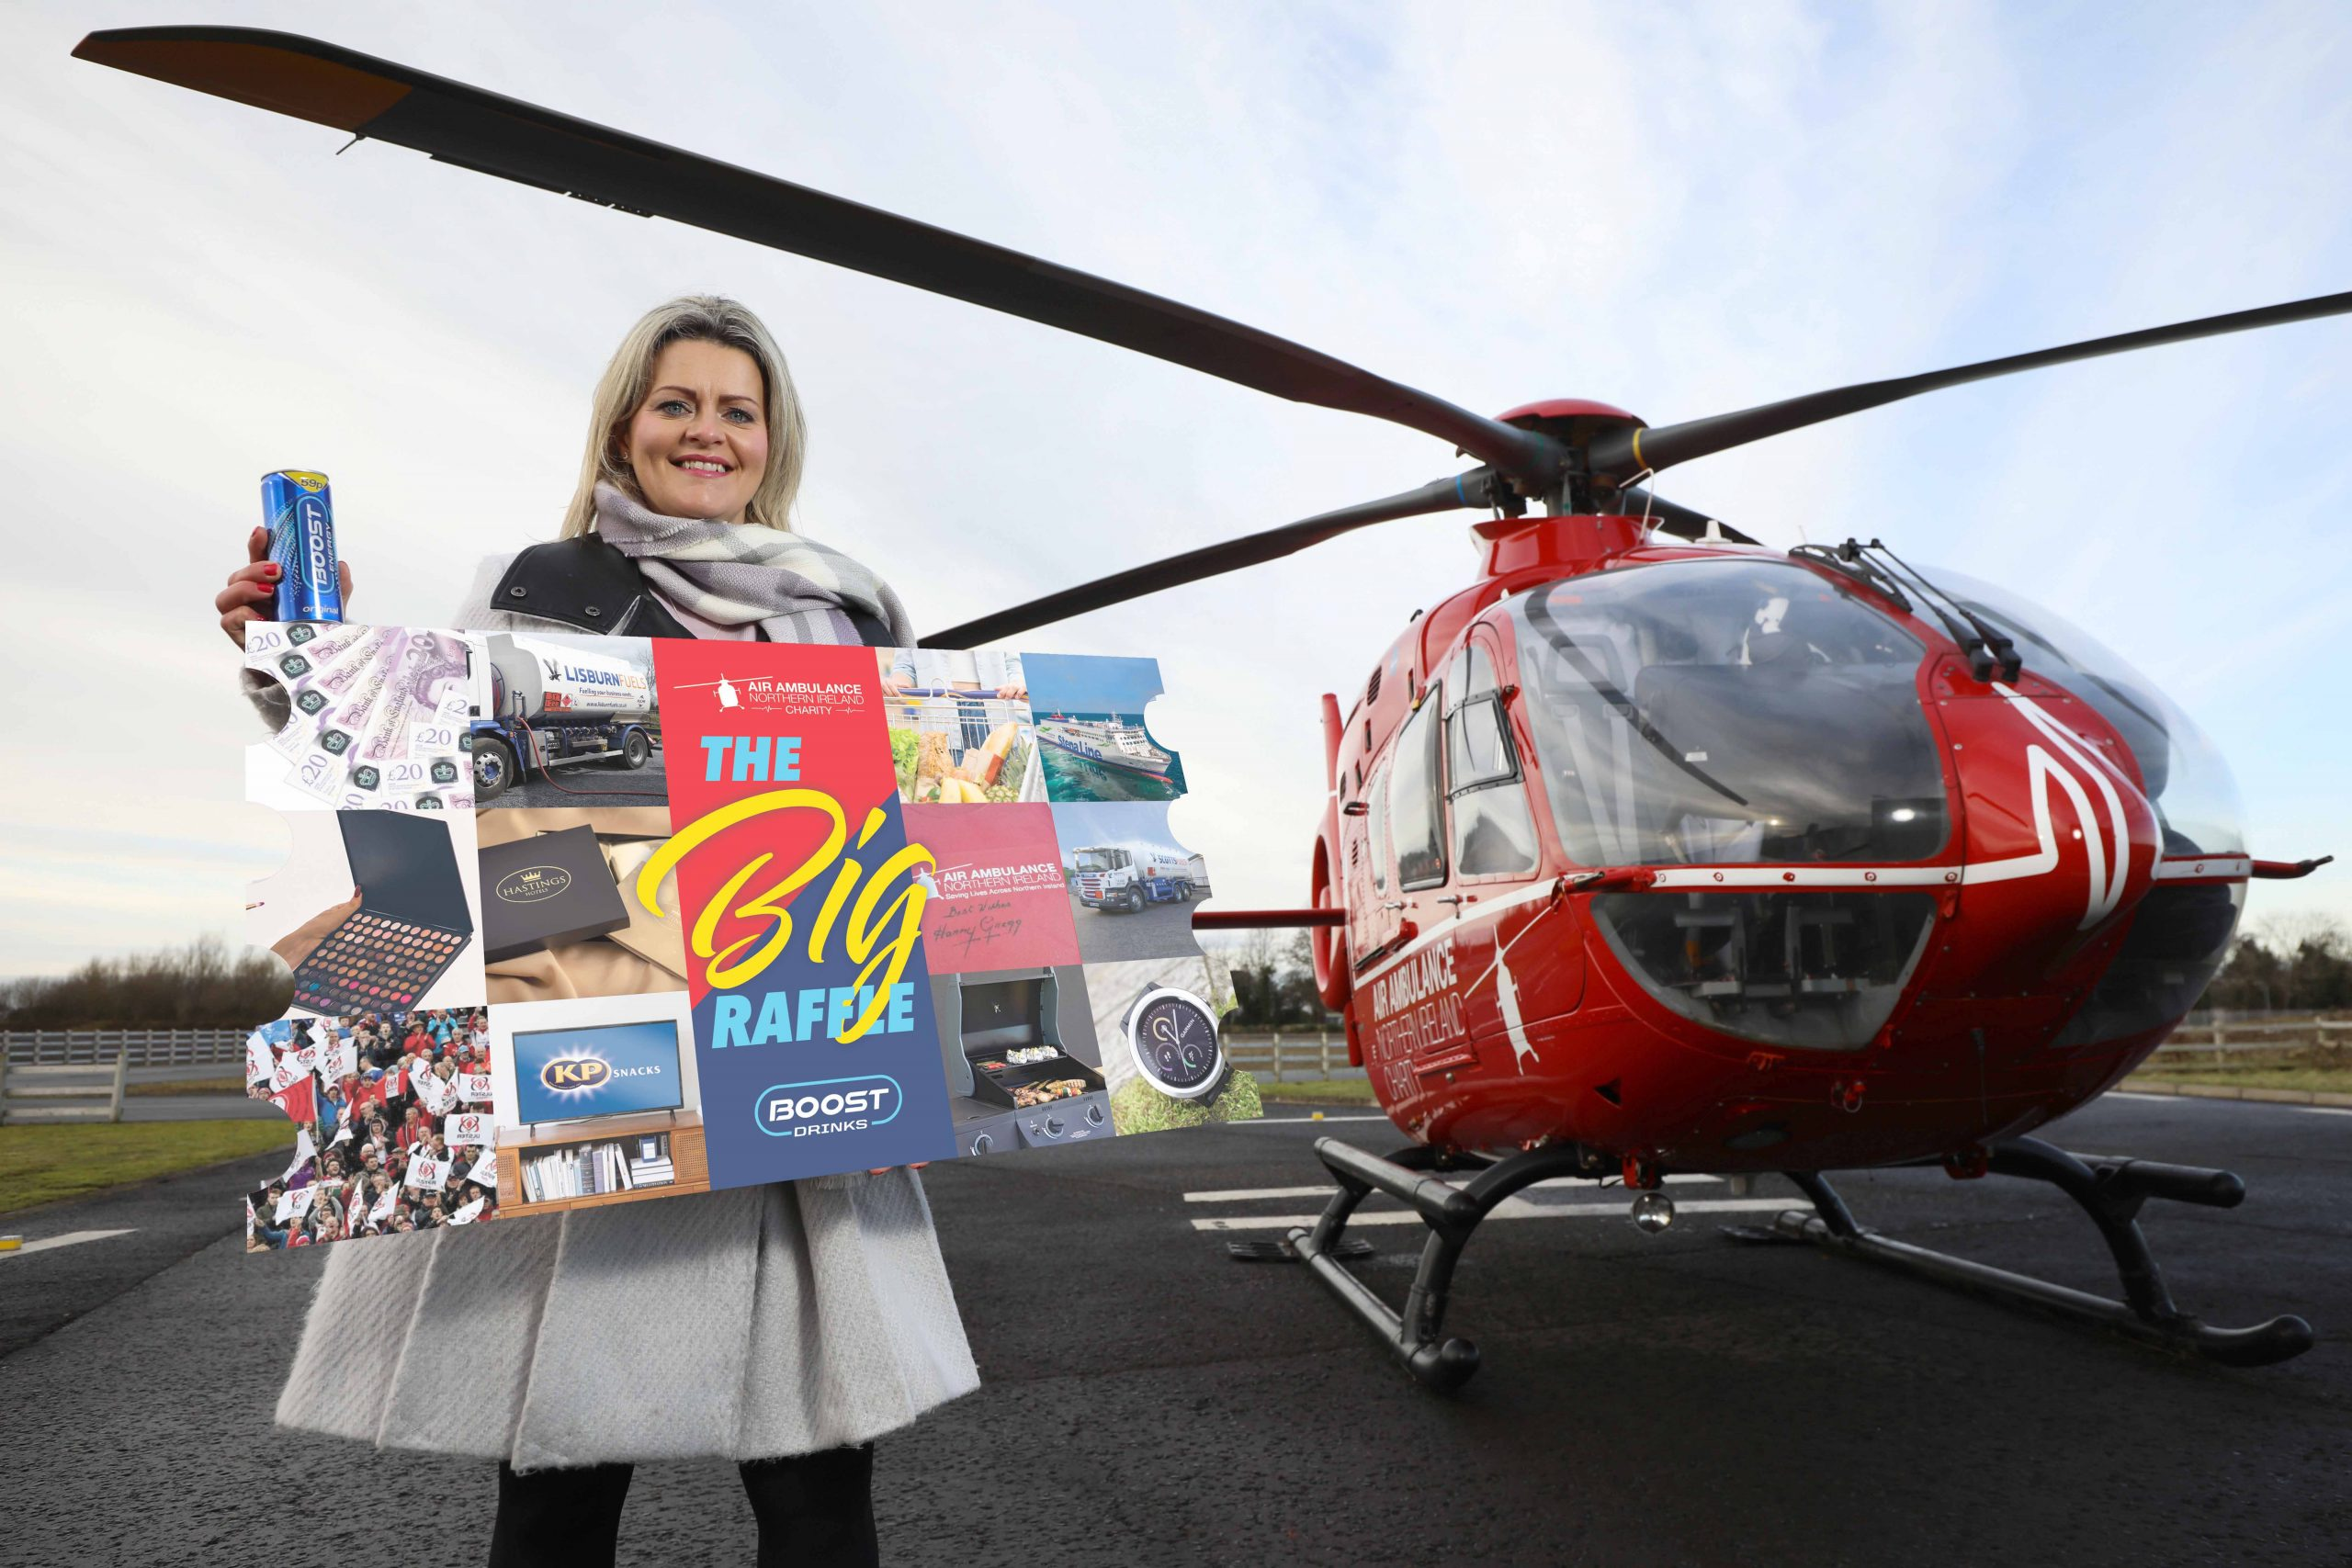 SPECTACUL-AIR RAFFLE TO RAISE FUNDS FOR AANI: Life-saving charity Air Ambulance Northern Ireland (AANI) and partner Boost Drinks are aiming to cheer everyone up this gloomy January and raise essential funds by launching an incredible raffle worth thousands of pounds. The Big Raffle tickets can be purchased via www.airambulanceni.org/thebigraffle/ for a chance to win amazing prizes from as little as £1. Colleen Milligan, Area Fundraising Manager at AANI, launches the raffle at the AANI base in Lisburn.